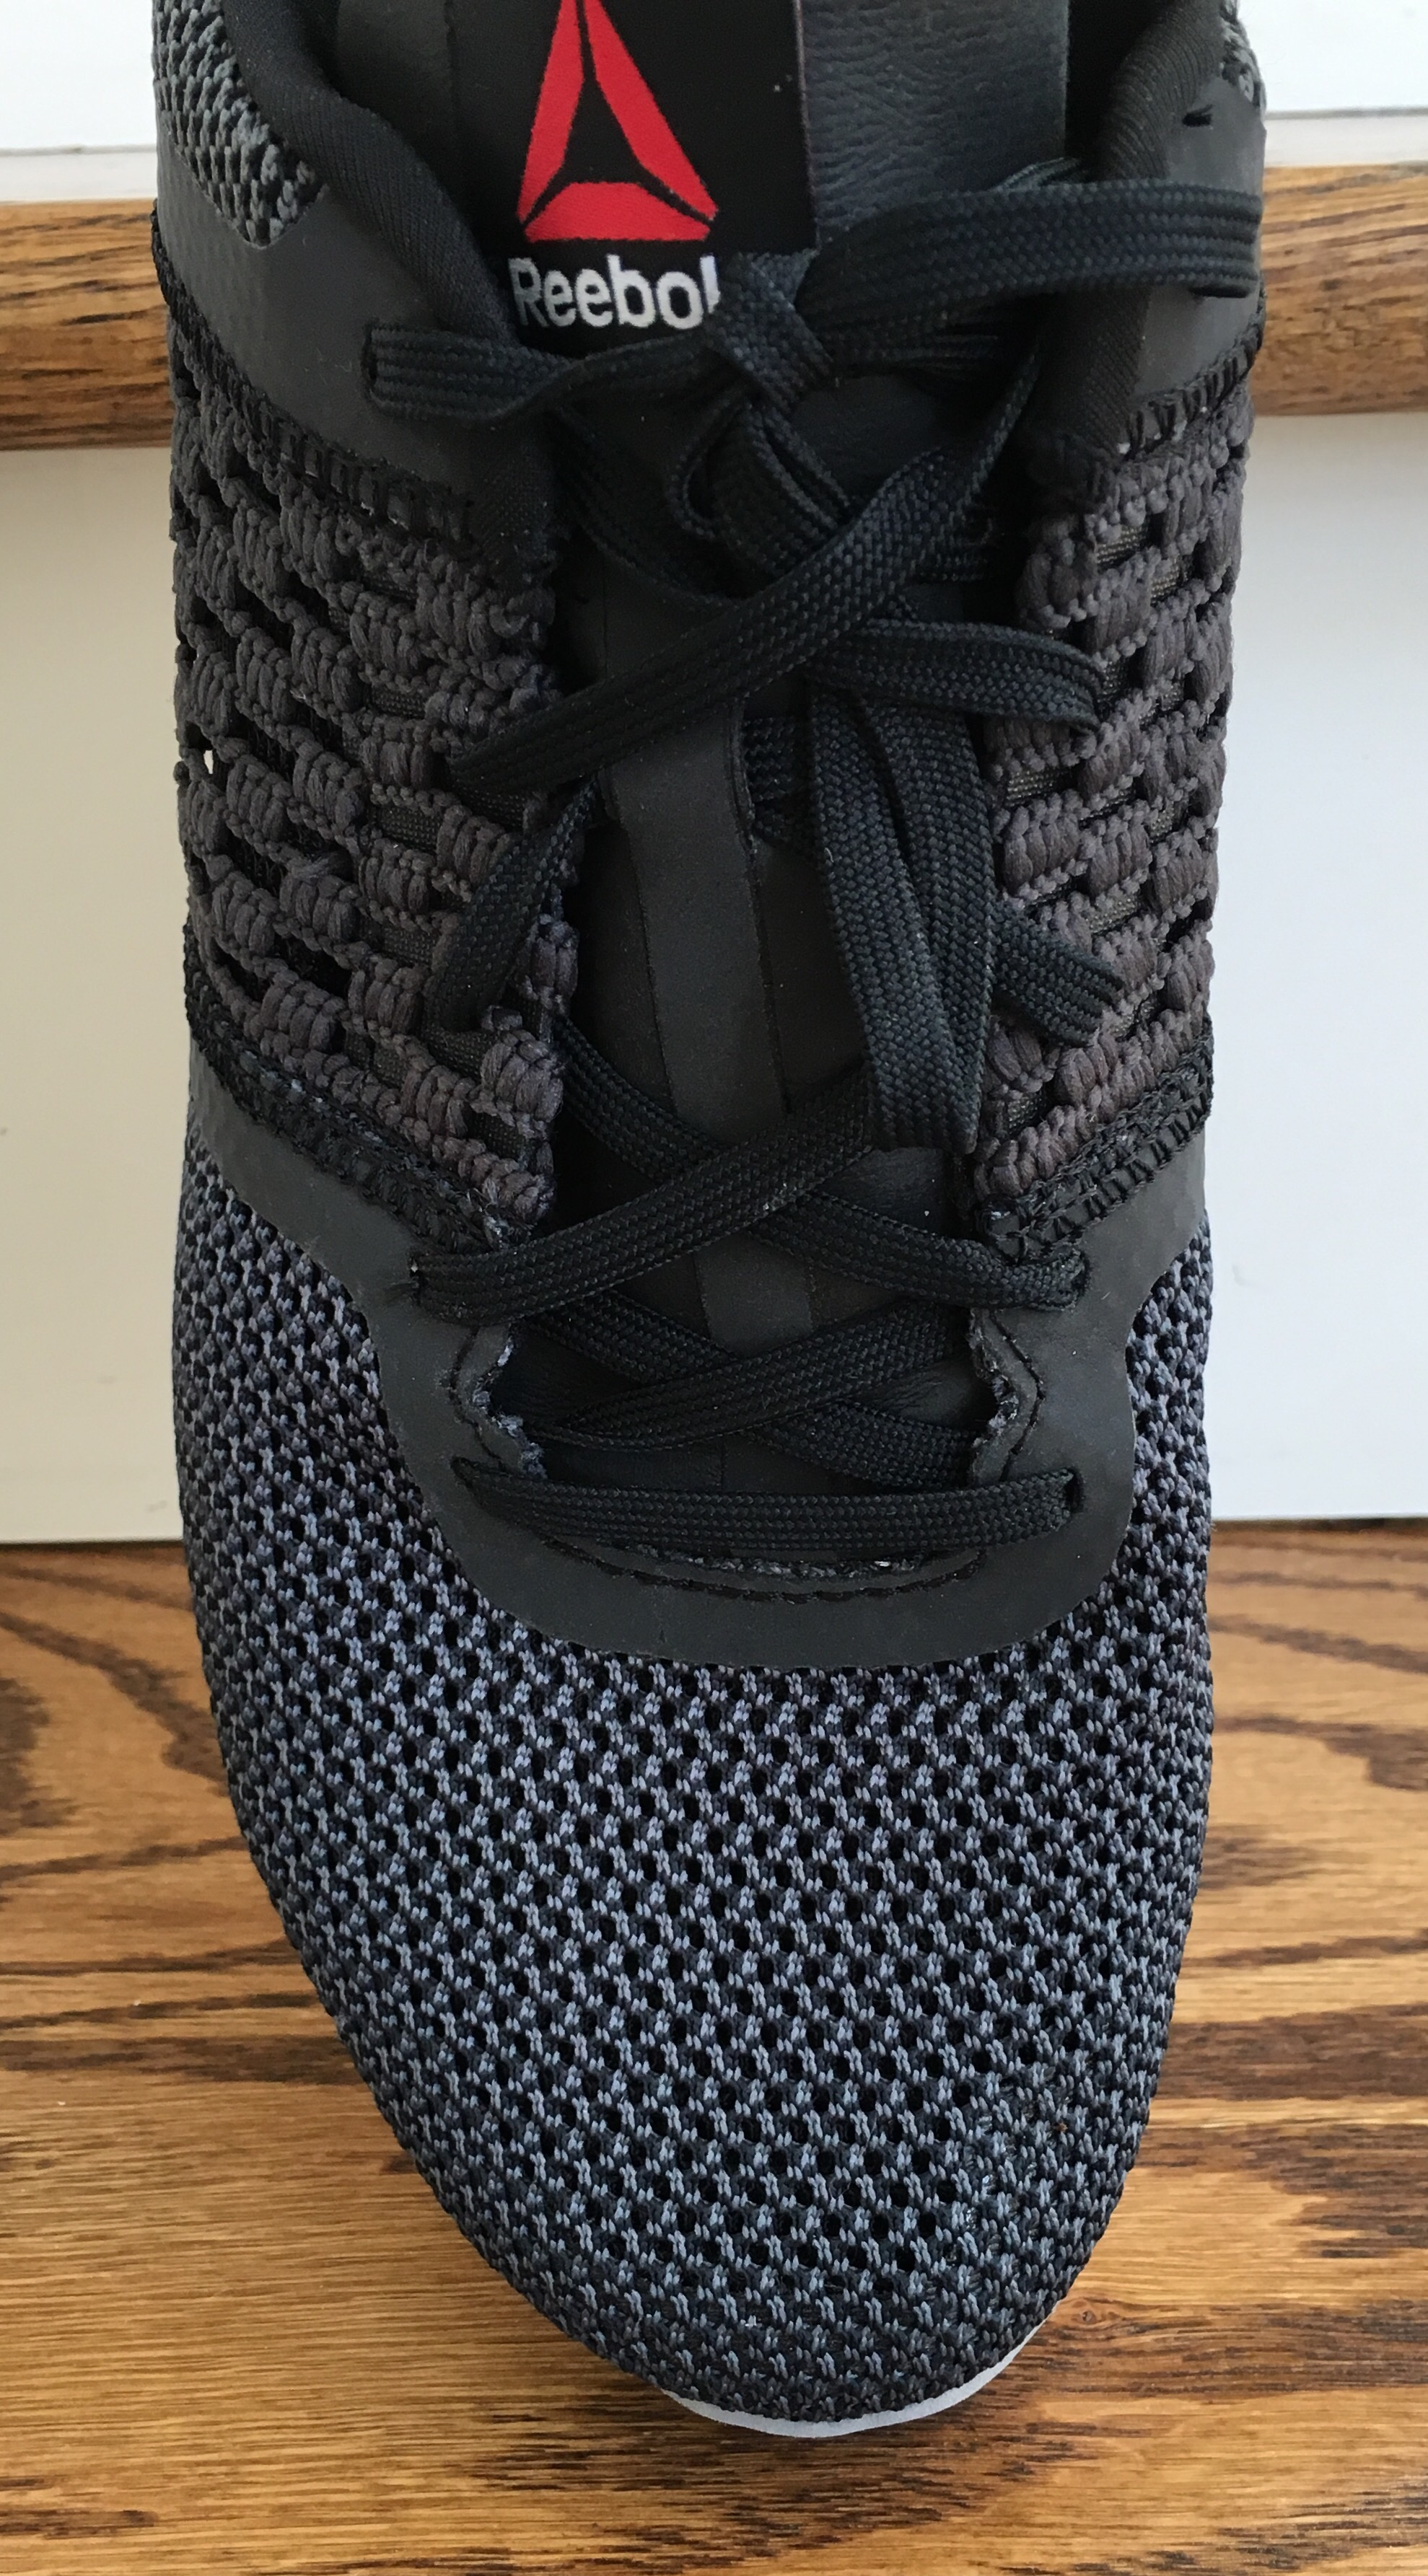 cbdd2f79950 Why can t shoe companies get this right! Our toes were designed to be free  and function independently- not squished together! The Reebok Zprint  forefoot is ...